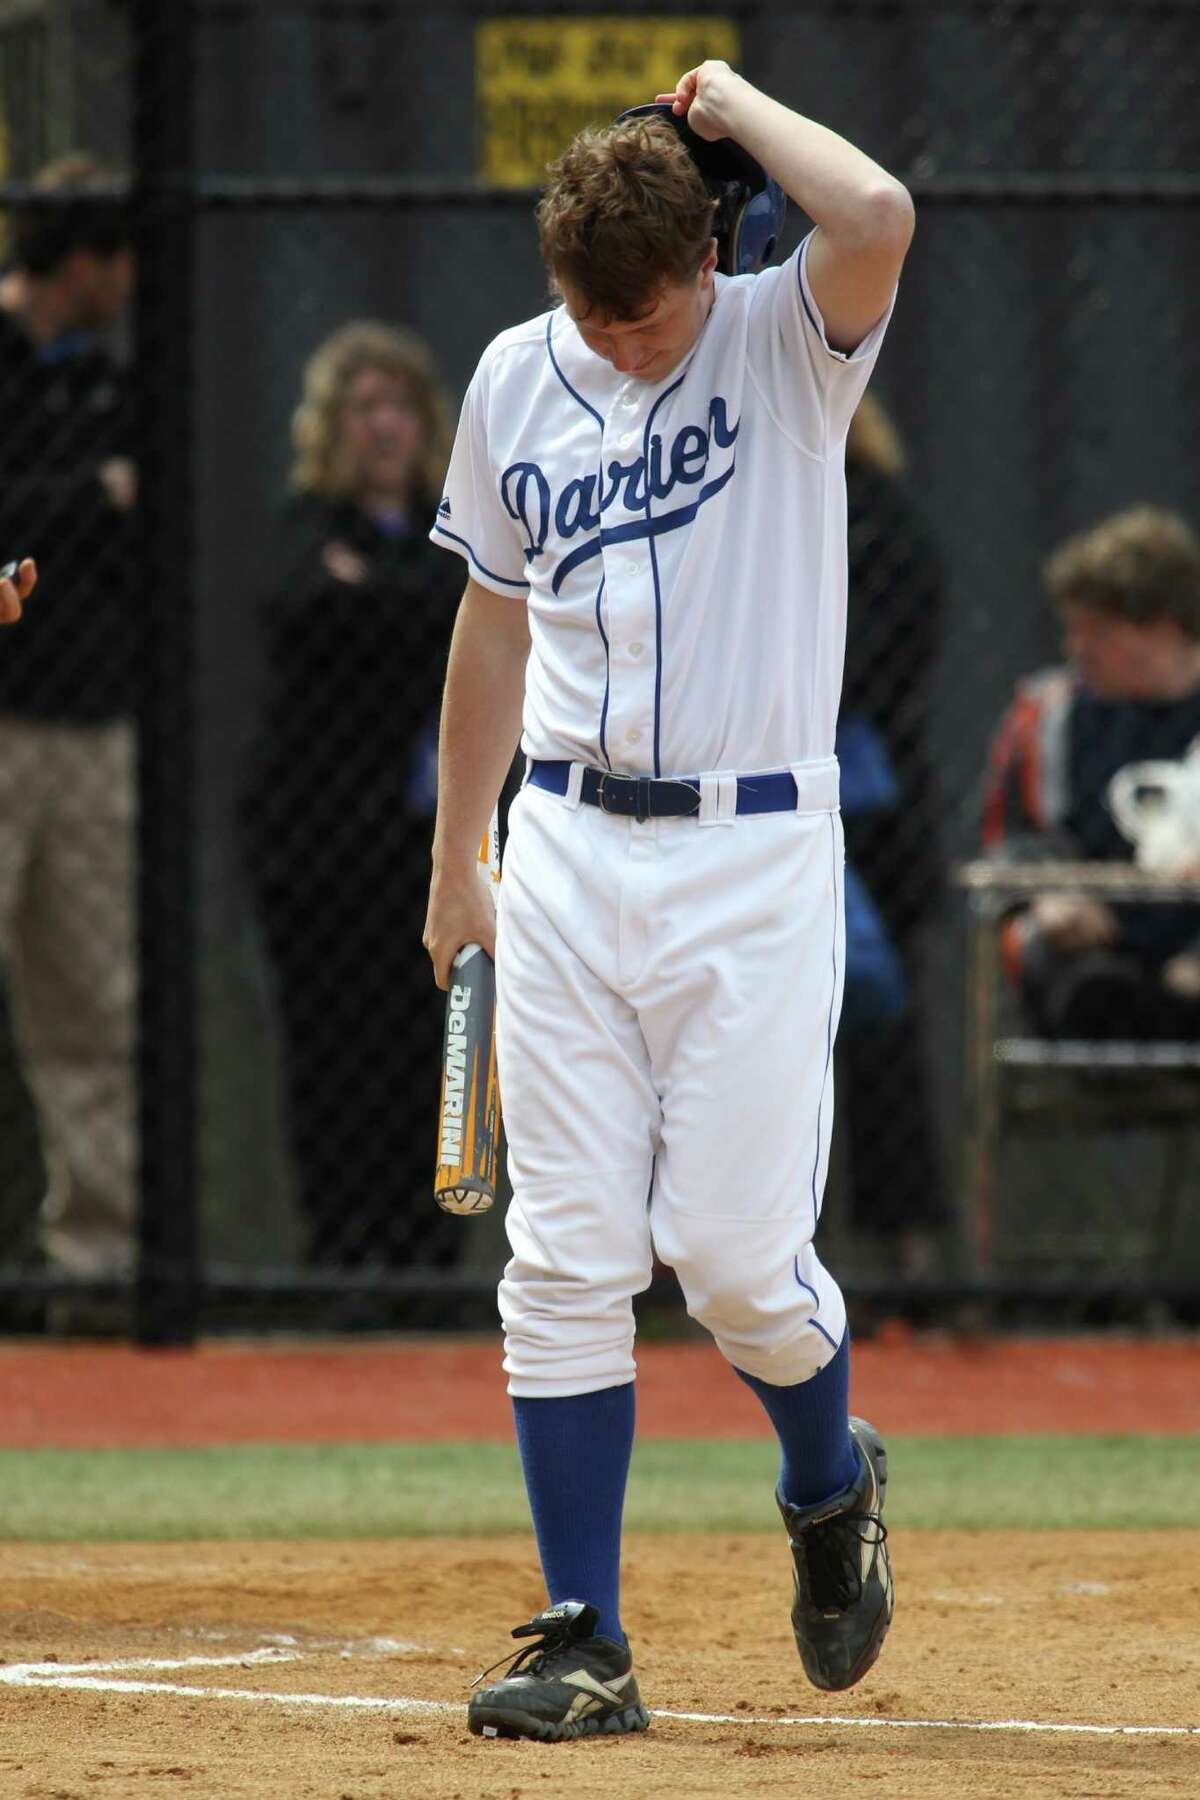 Darien's Liam Naughton shows his dejection following his strikeout against Trumbull on Monday. The visiting Eagles won the game, 5-0. © J. Gregory Raymond